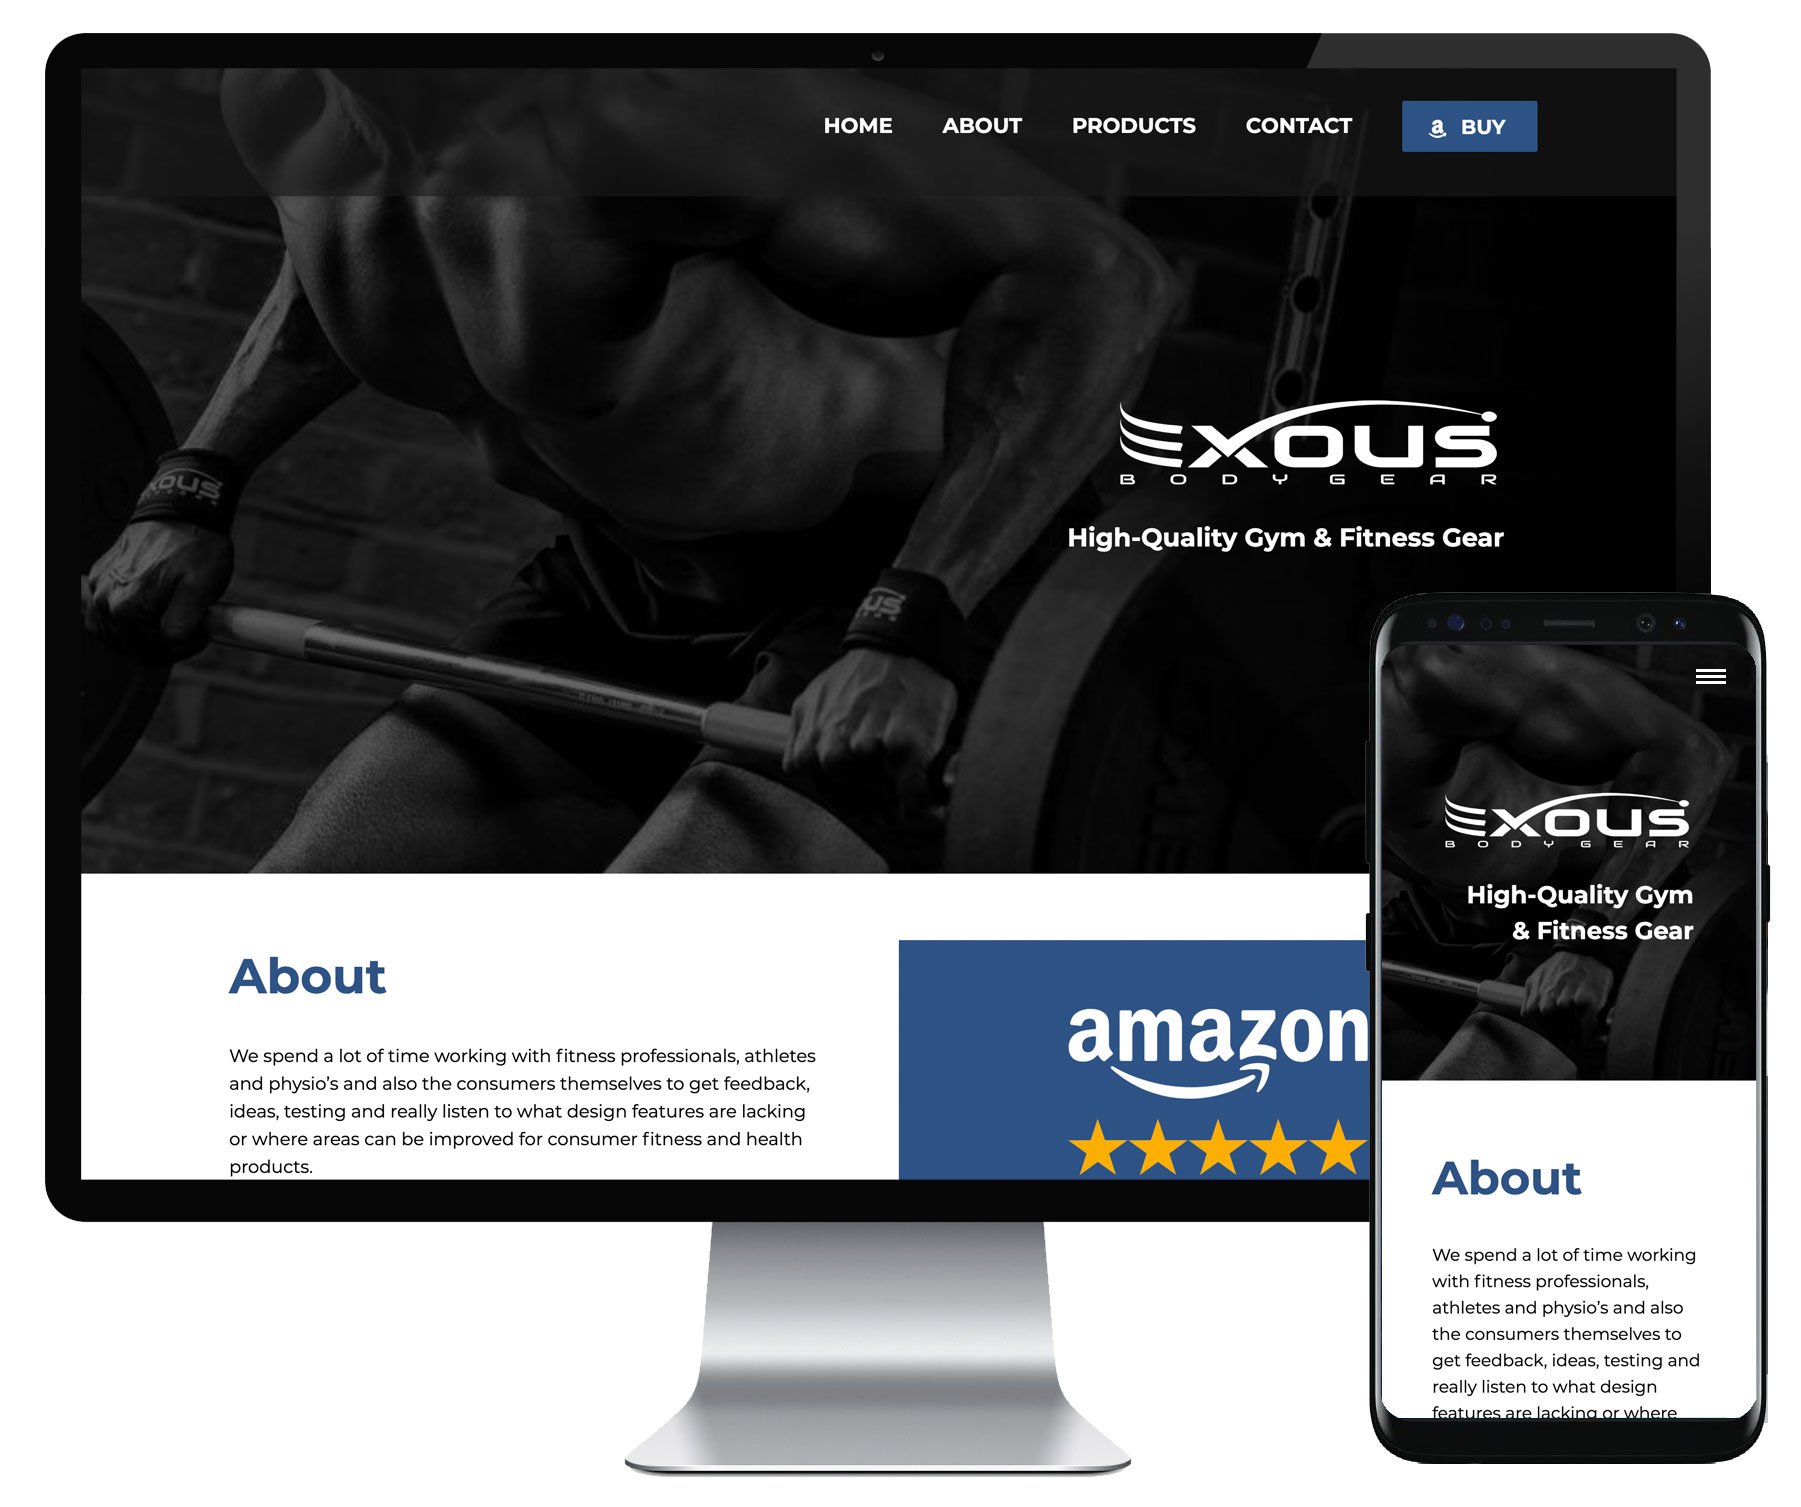 Exous Bodygear website